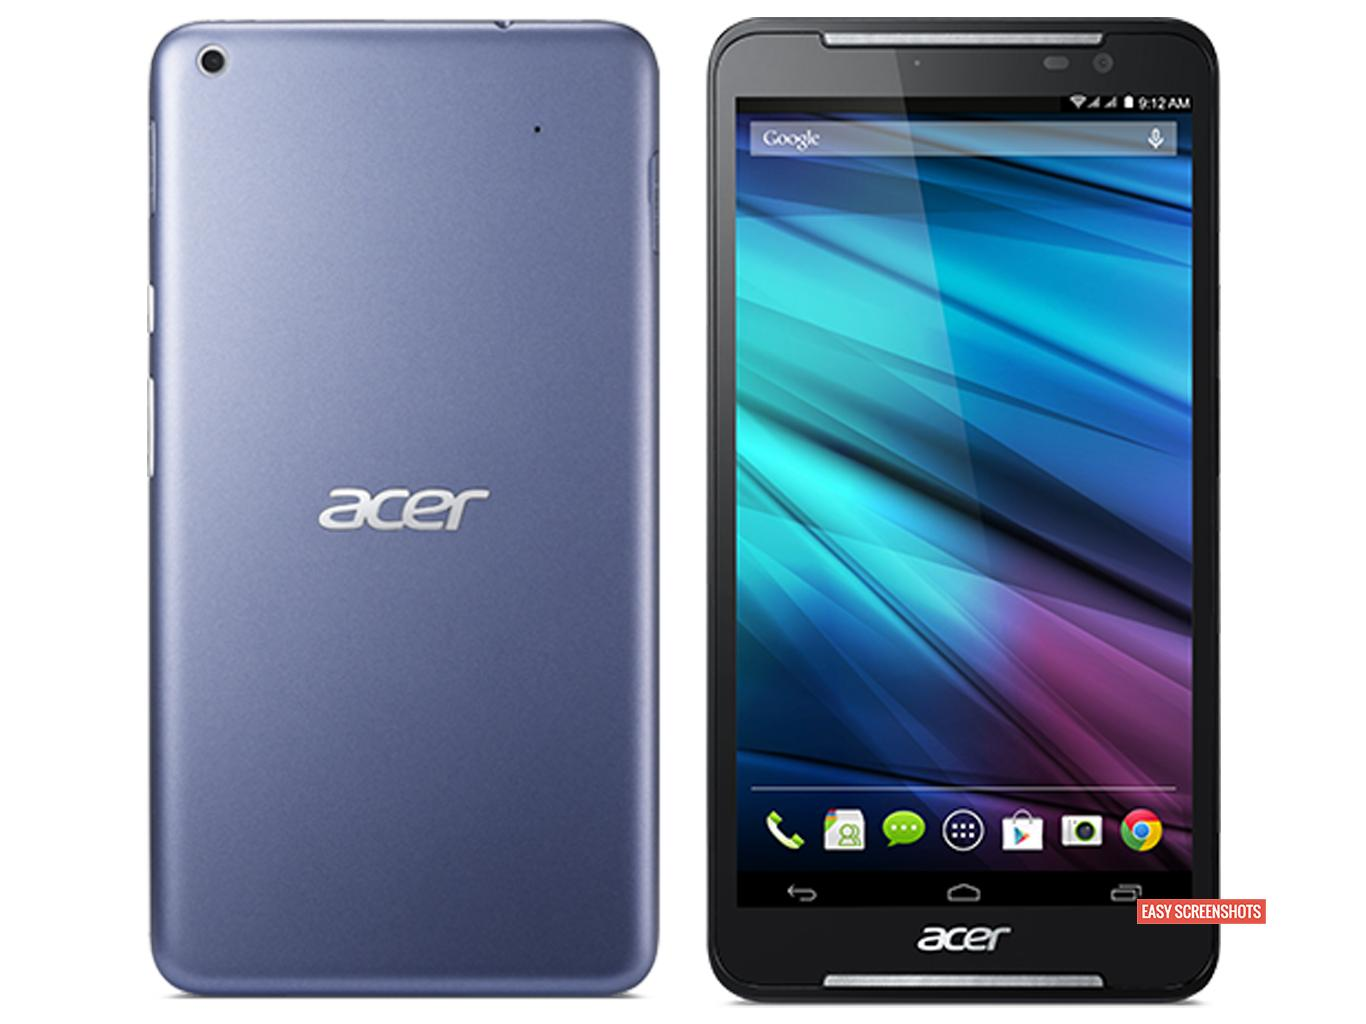 how to screenshot on Acer Iconia Talk S